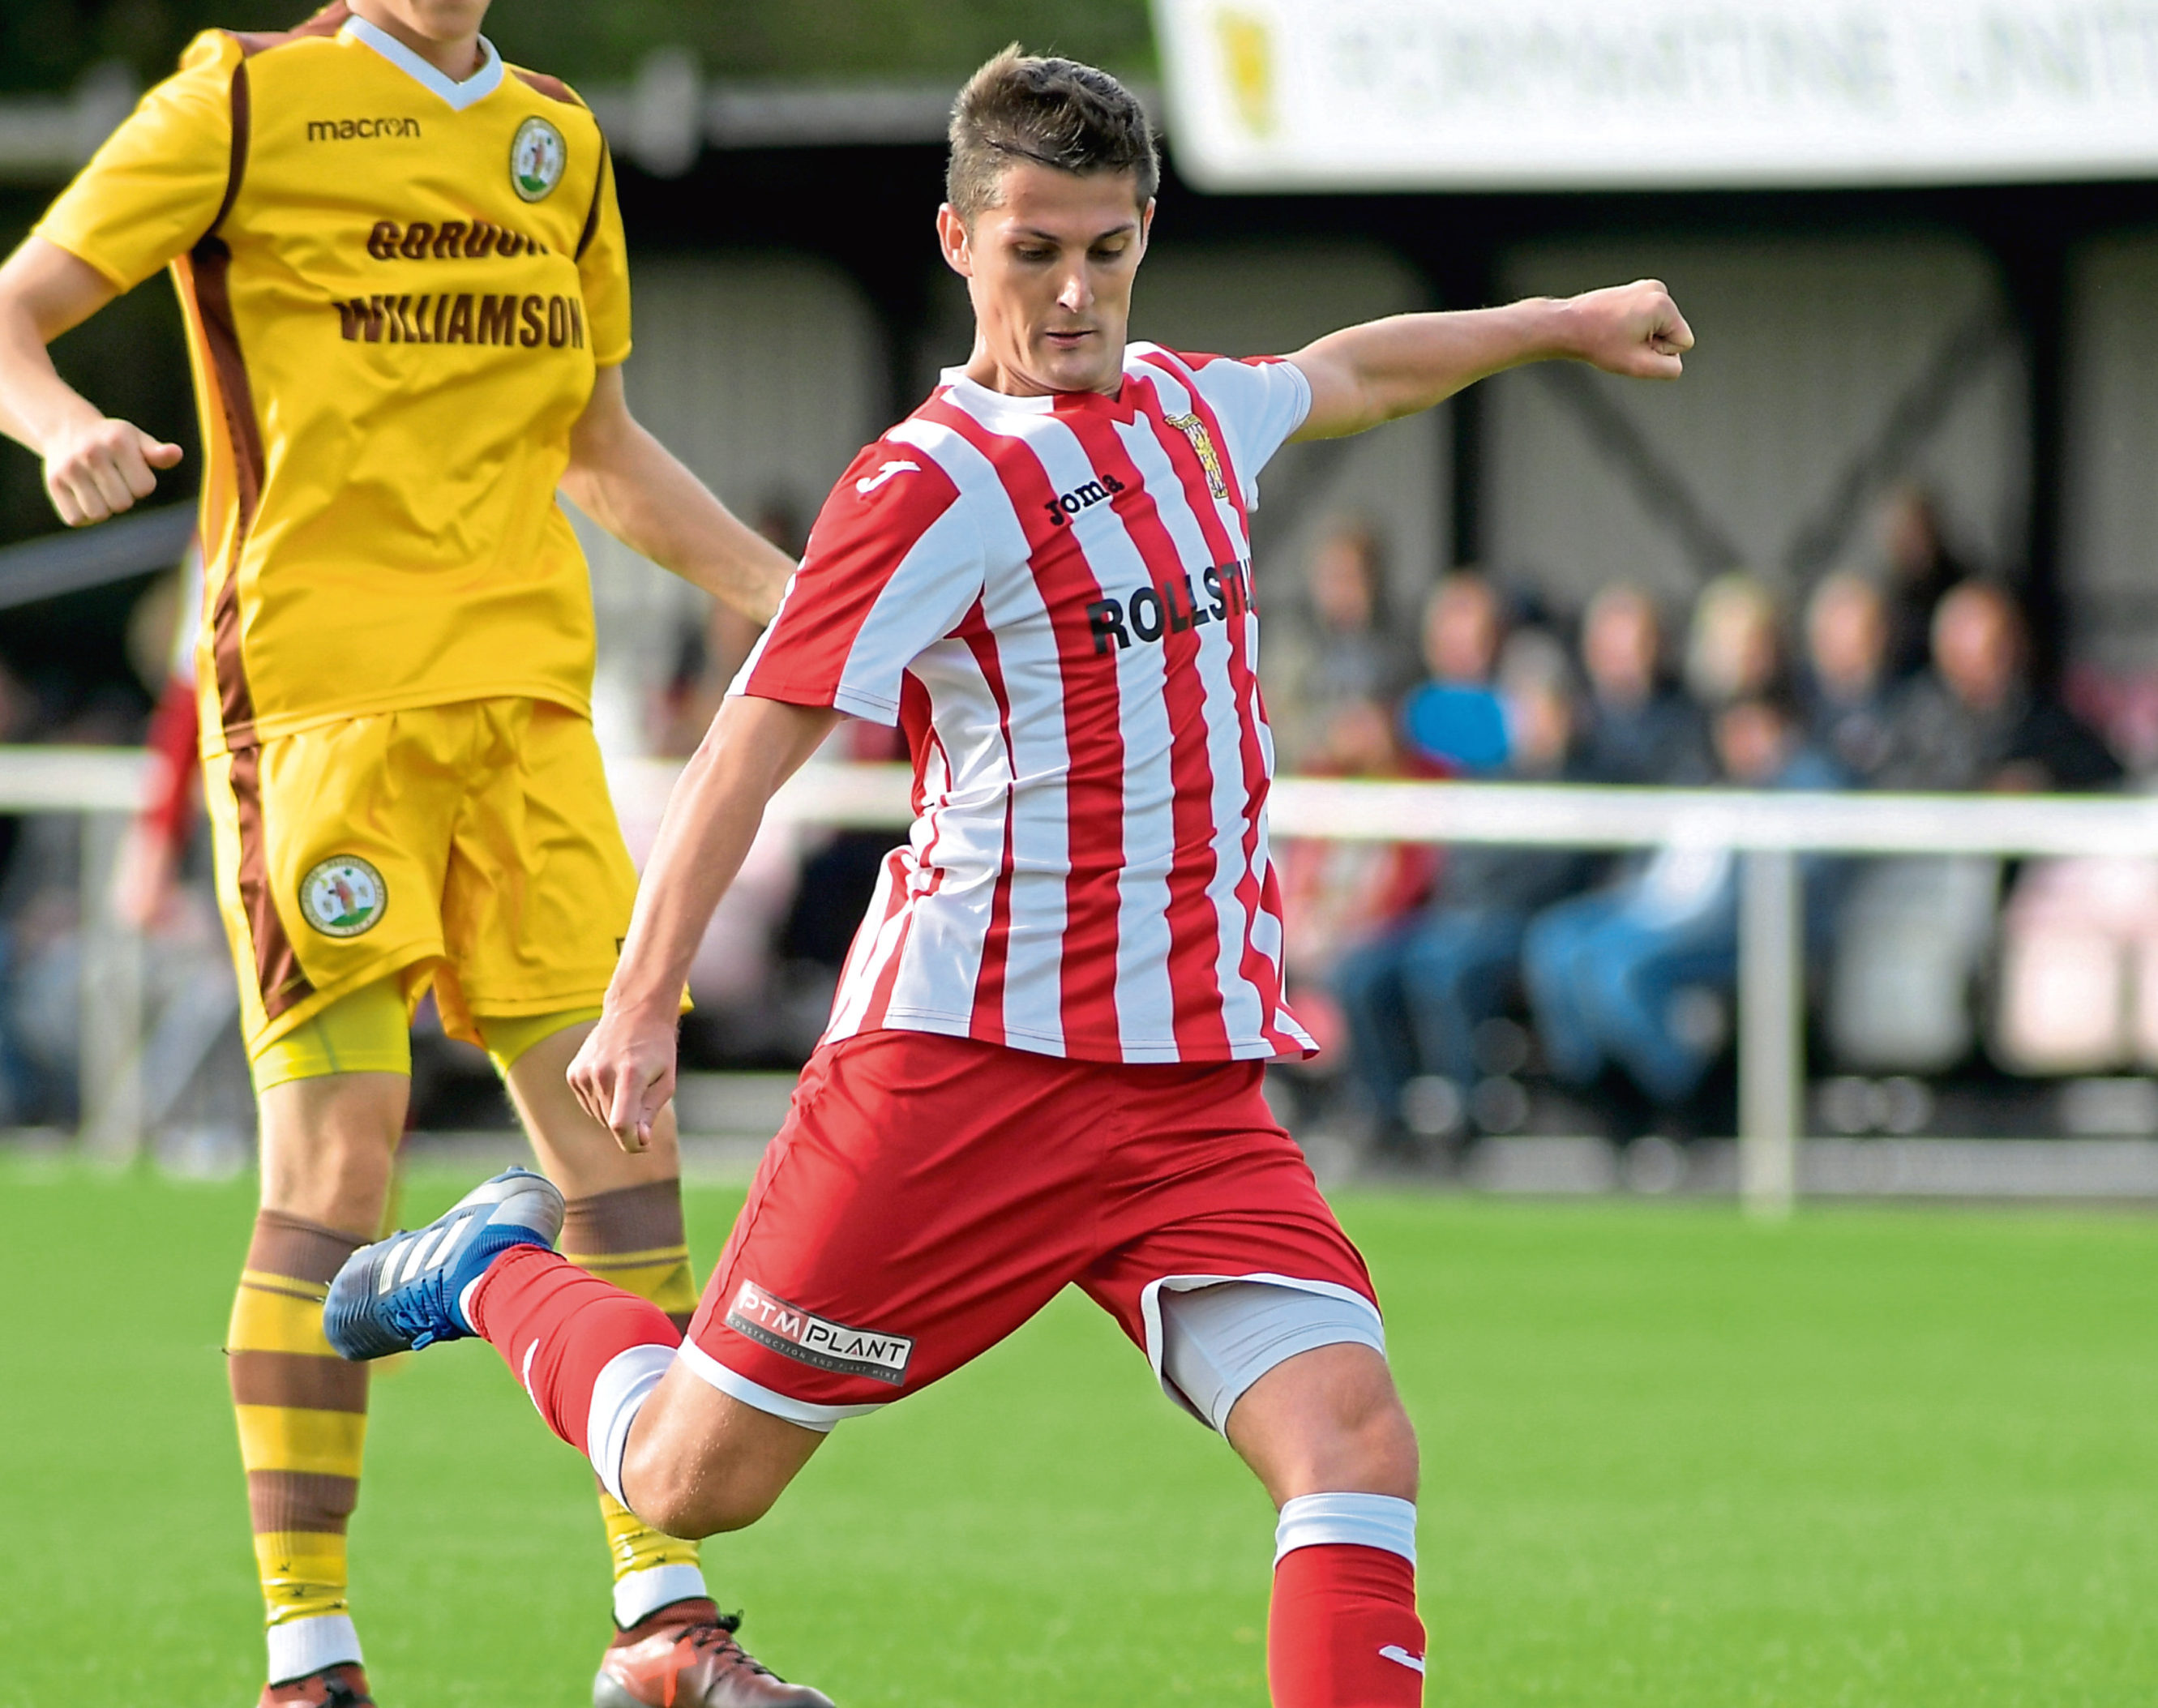 Formartine's Daniel Park. Picture by Kath Flannery